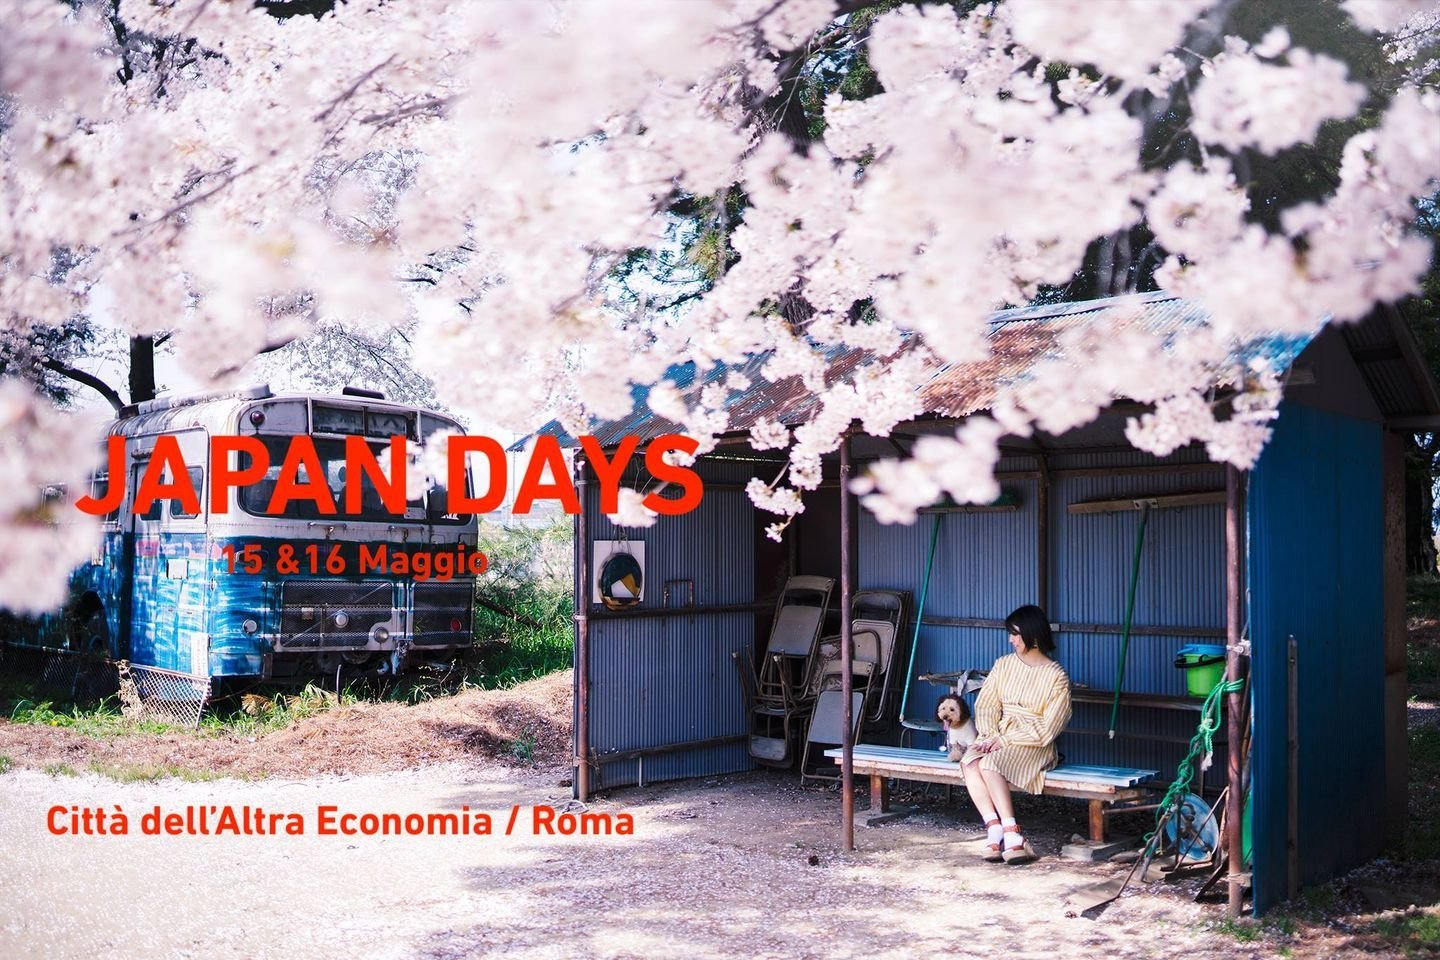 Japan Days and Japanese Market